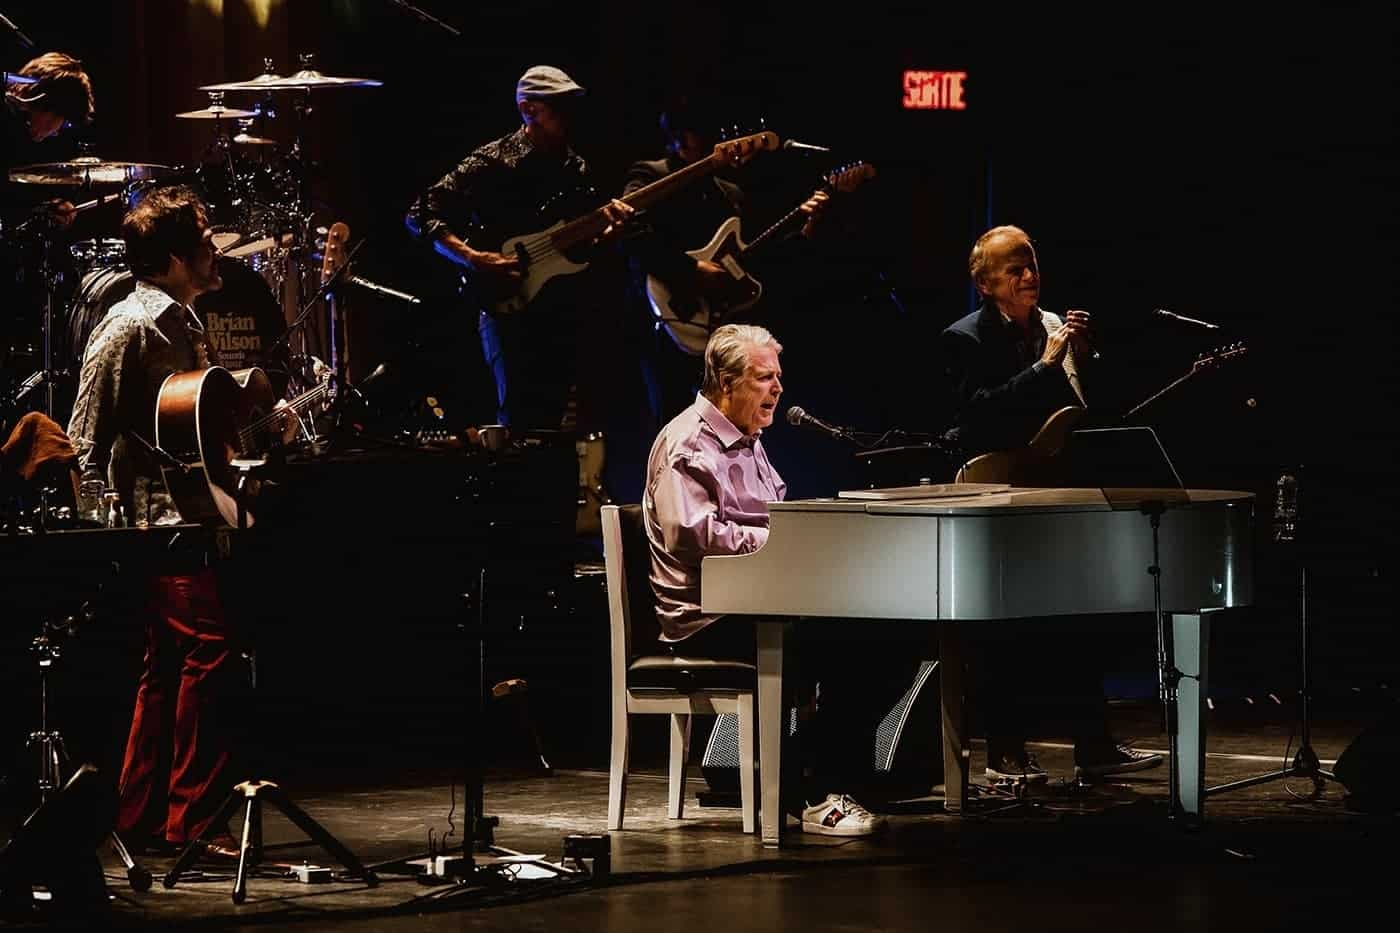 brian wilson montreal review